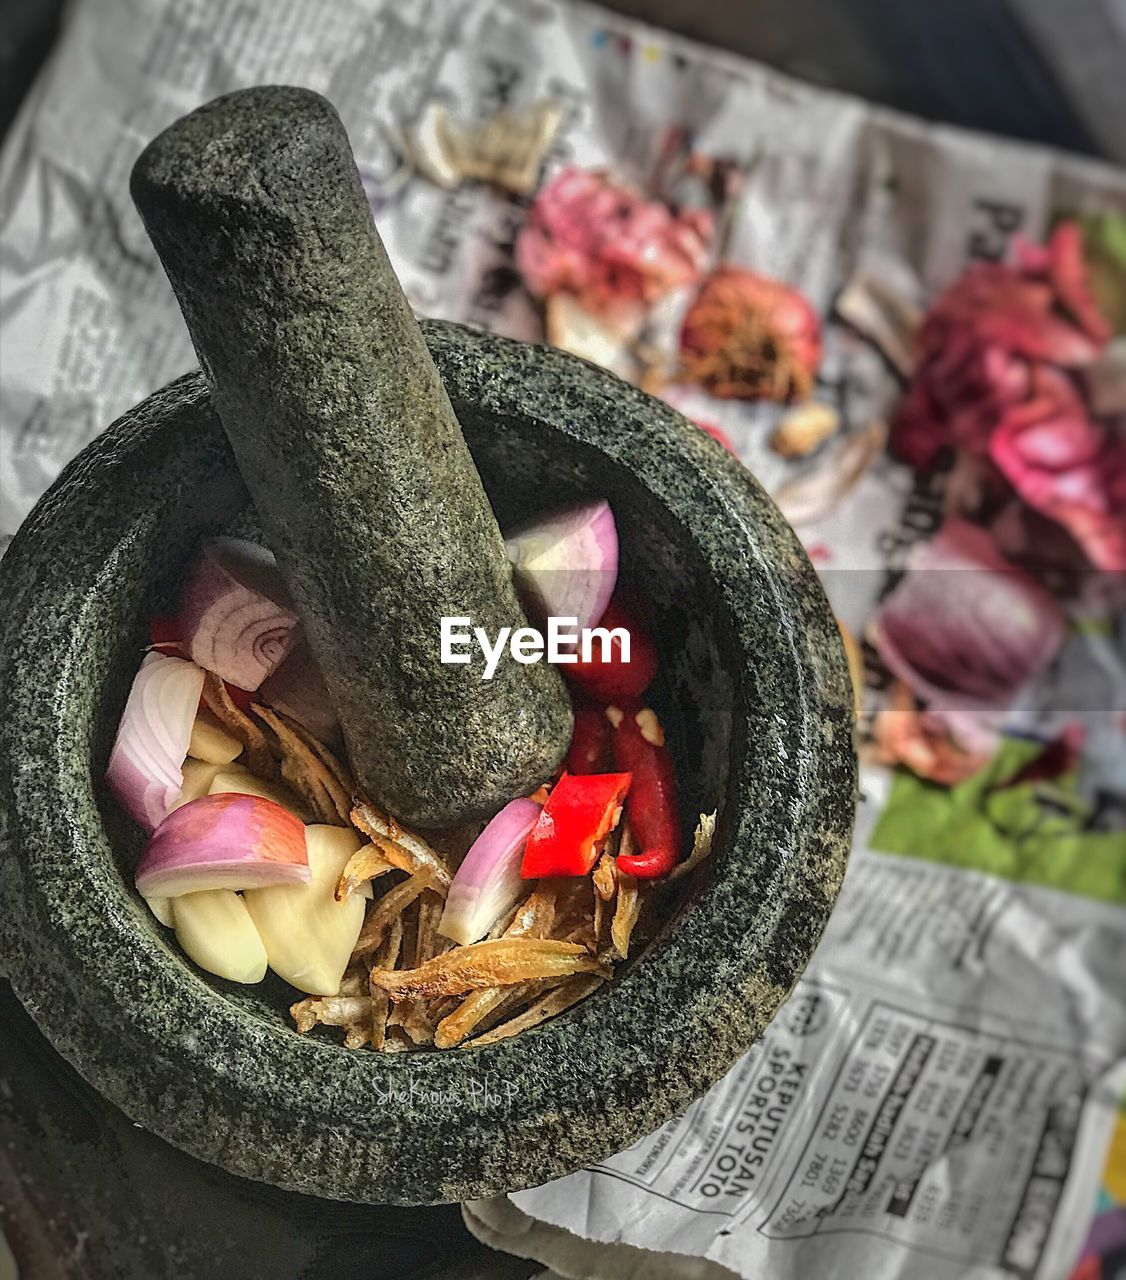 freshness, food and drink, close-up, vegetable, no people, food, indoors, mortar and pestle, still life, high angle view, flower, focus on foreground, pepper, flowering plant, red, spice, chili pepper, zucchini, plant, raw food